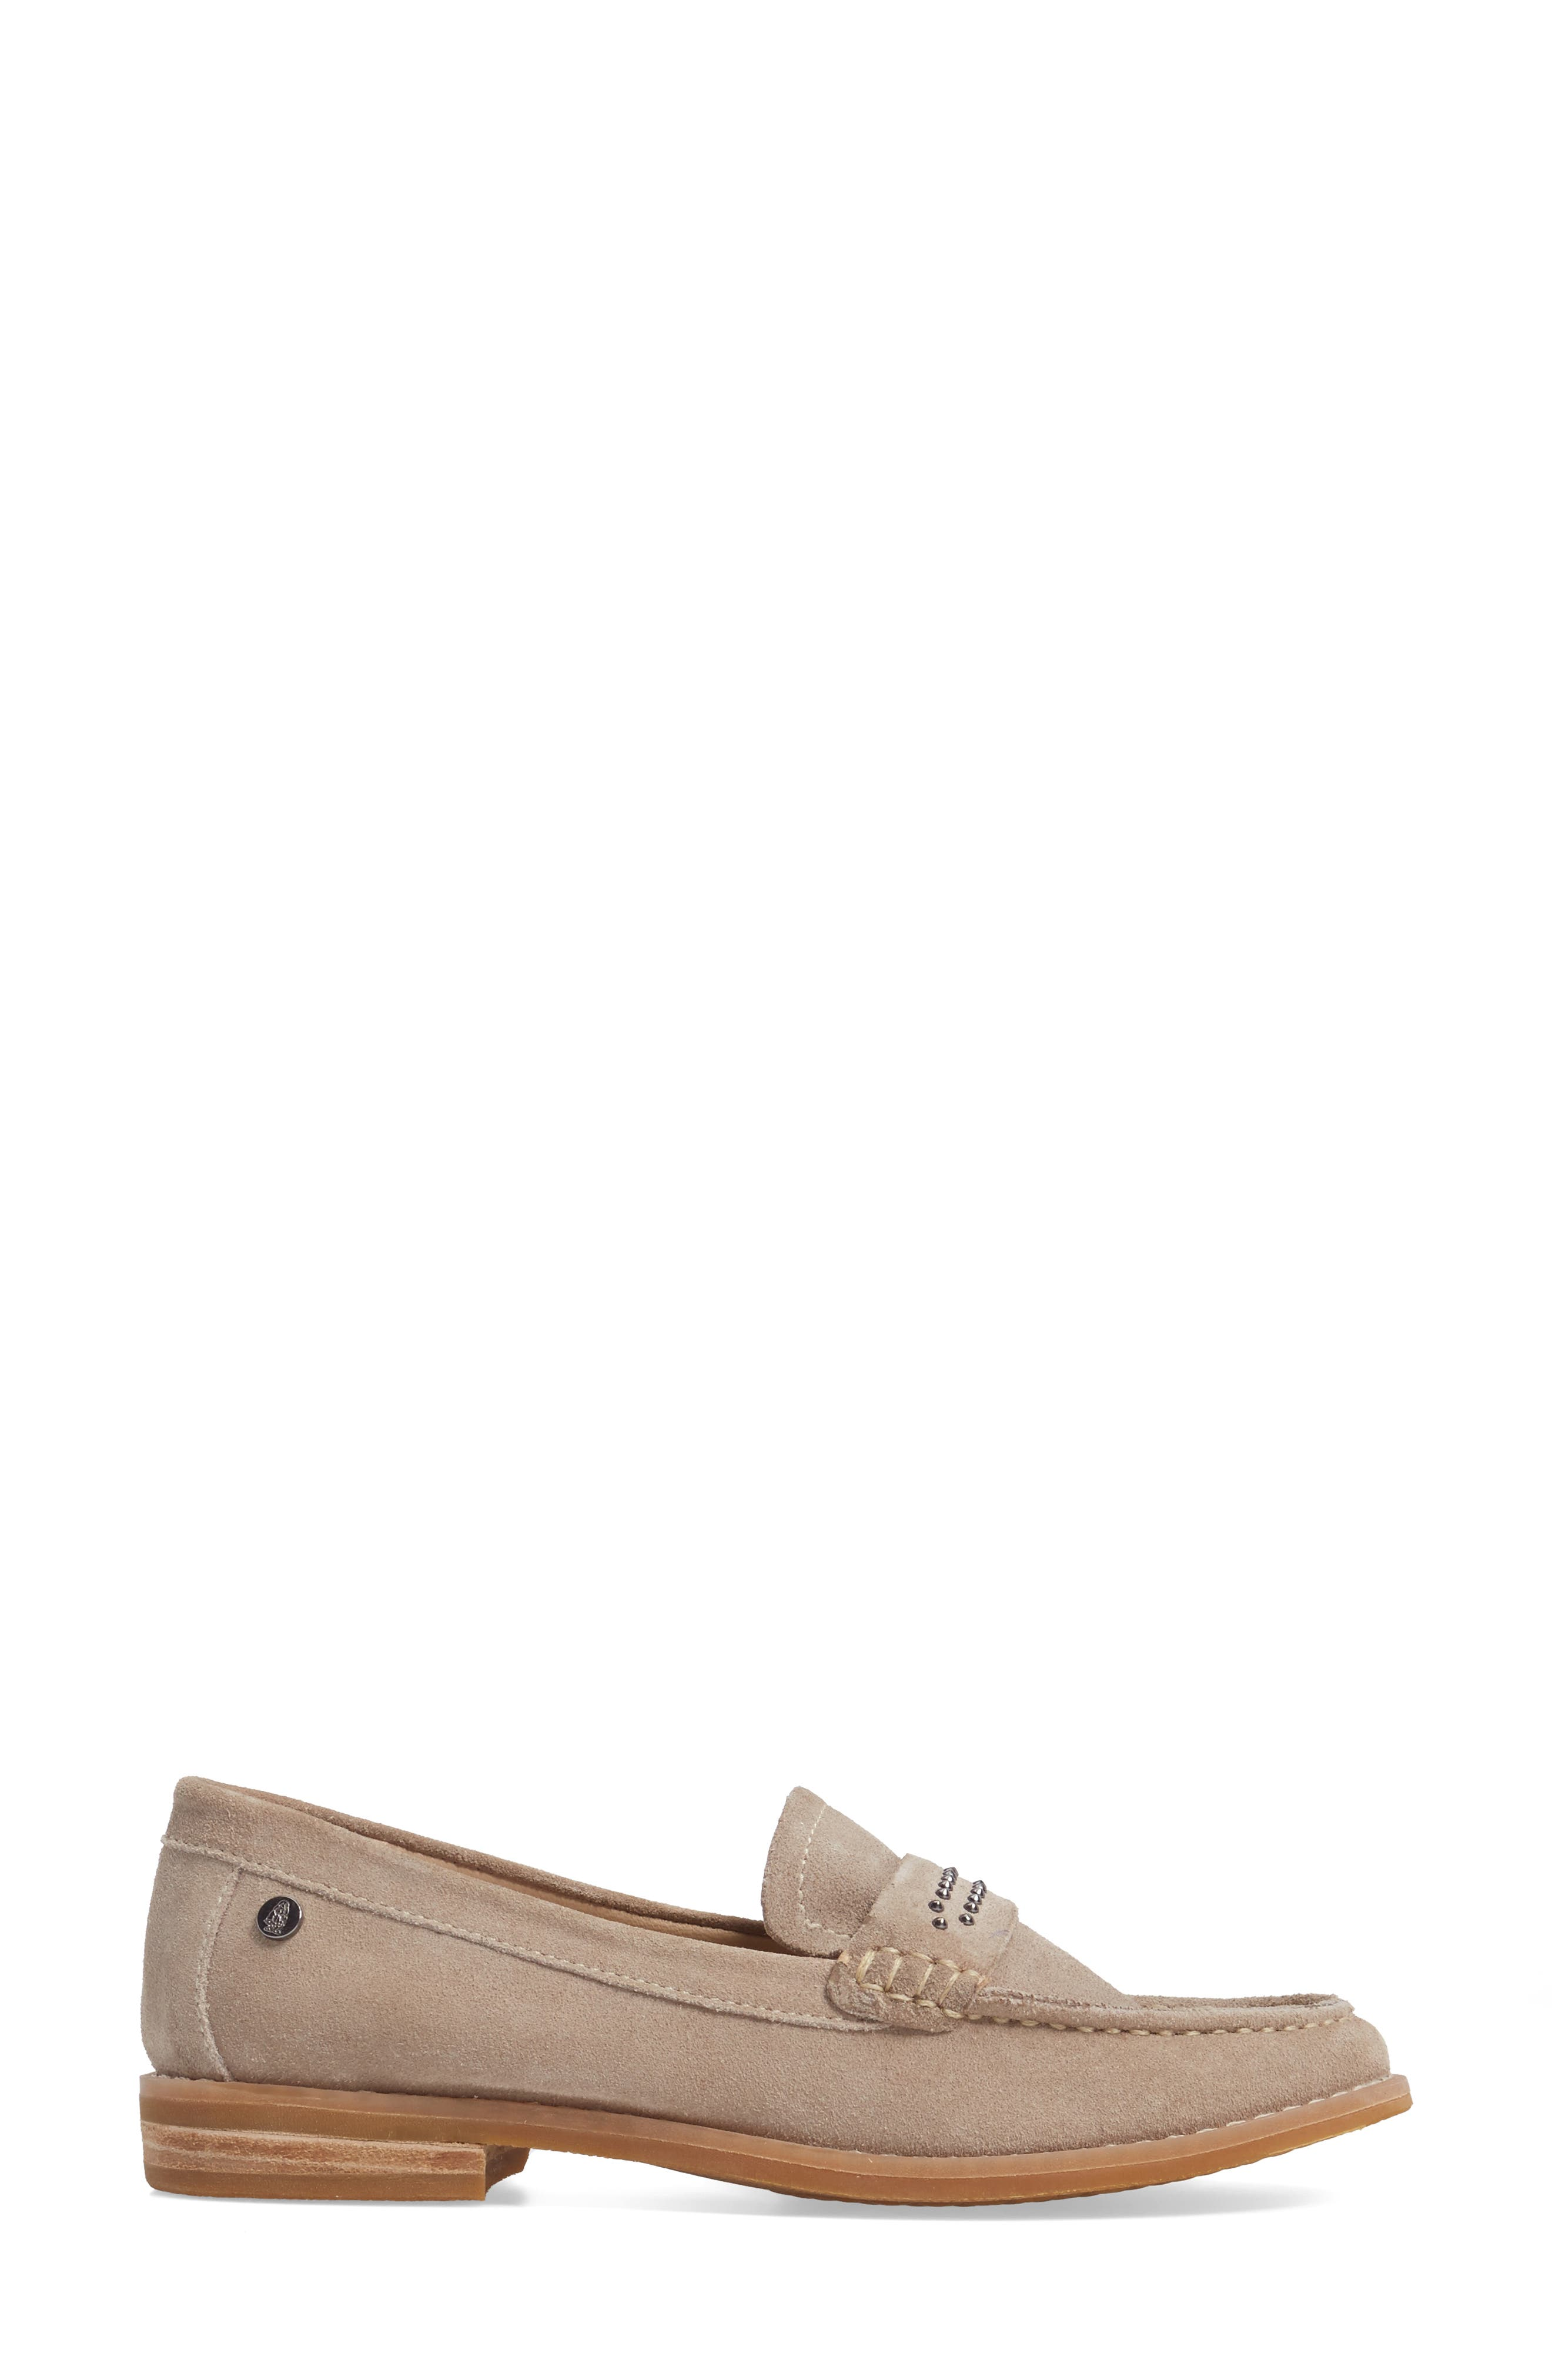 Aubree Chardon Loafer,                             Alternate thumbnail 3, color,                             Taupe Suede